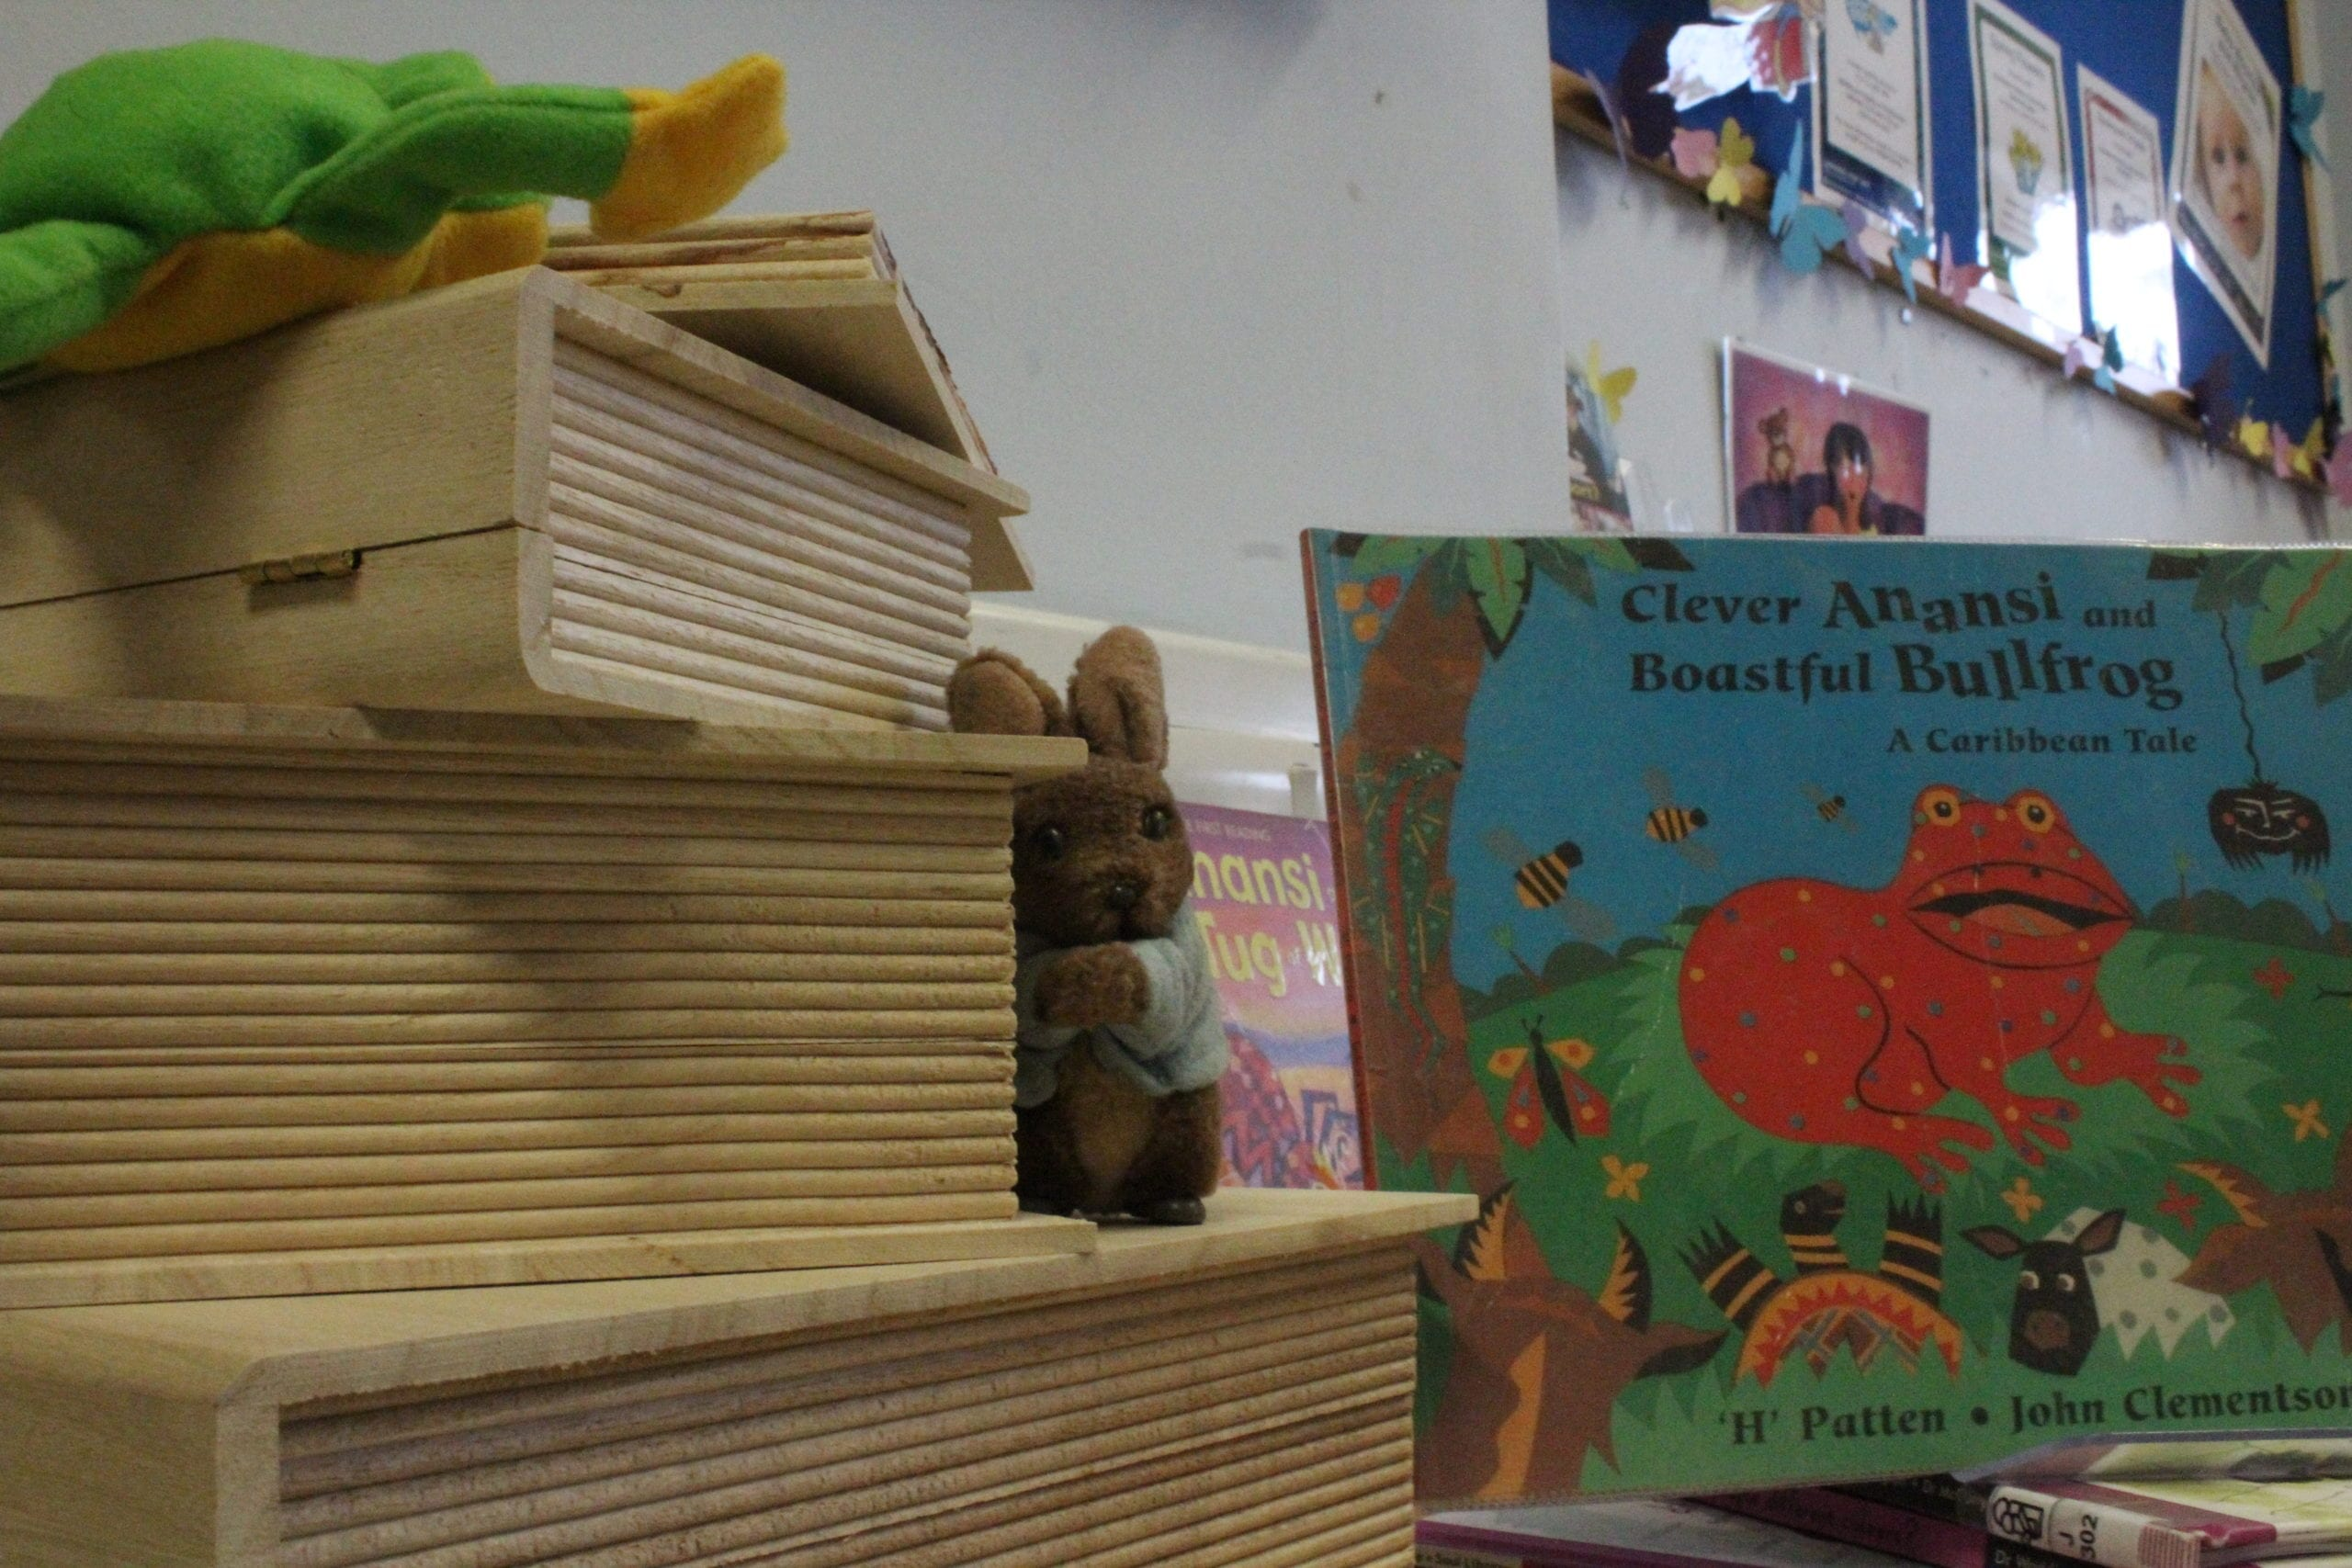 A book display in a library